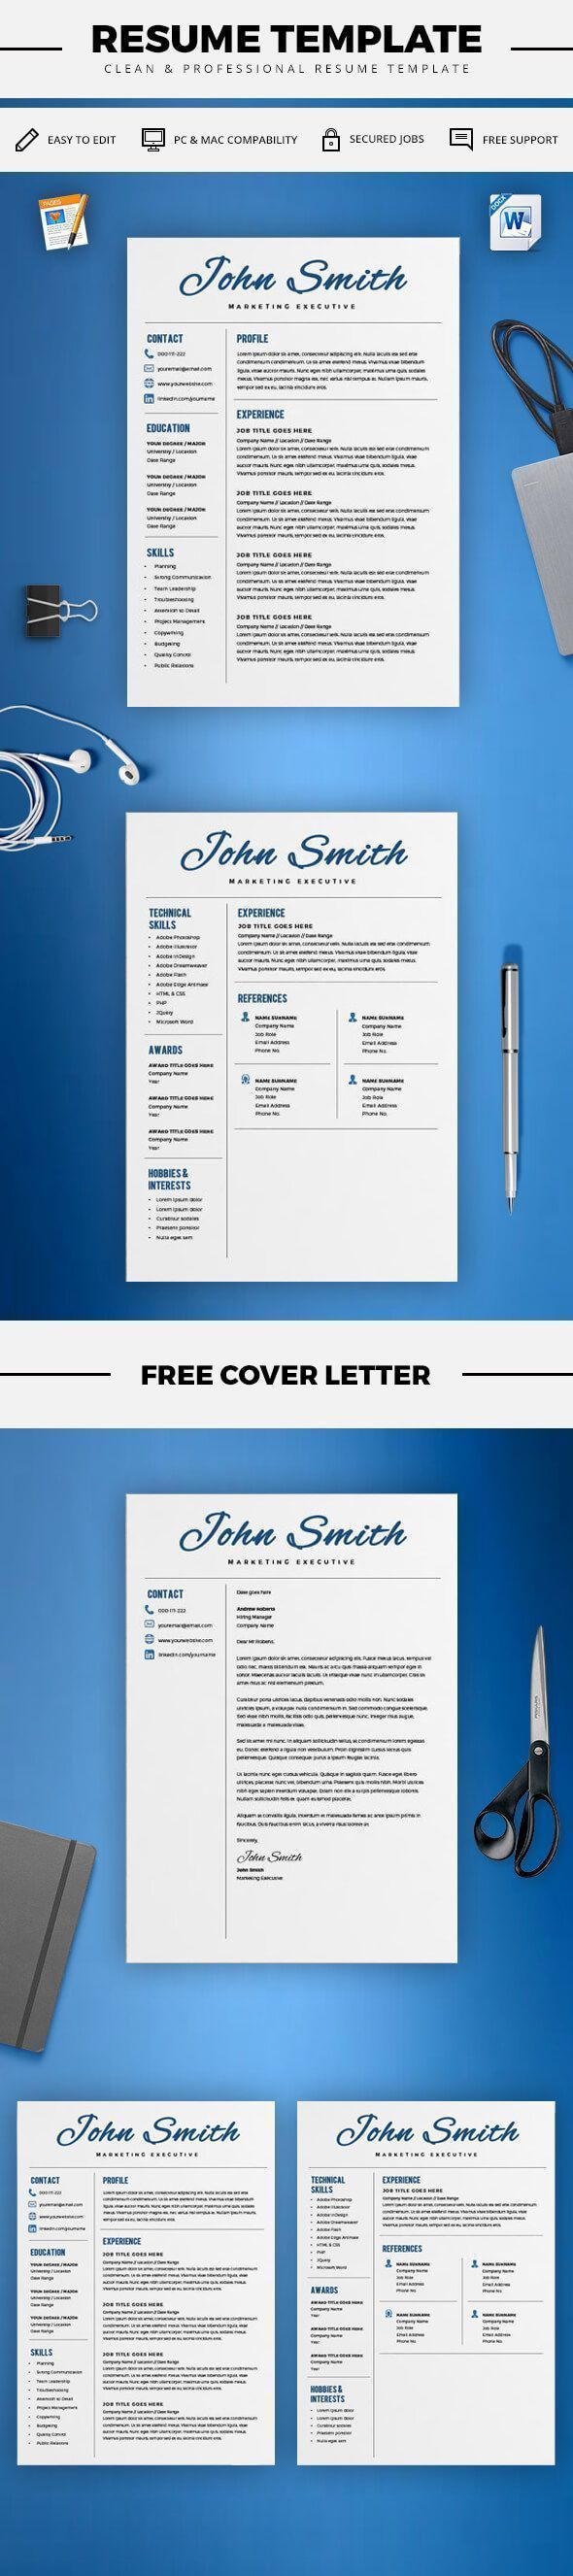 25 pinterest creative resume template cv template cover letter word and pages 2 page yelopaper Choice Image